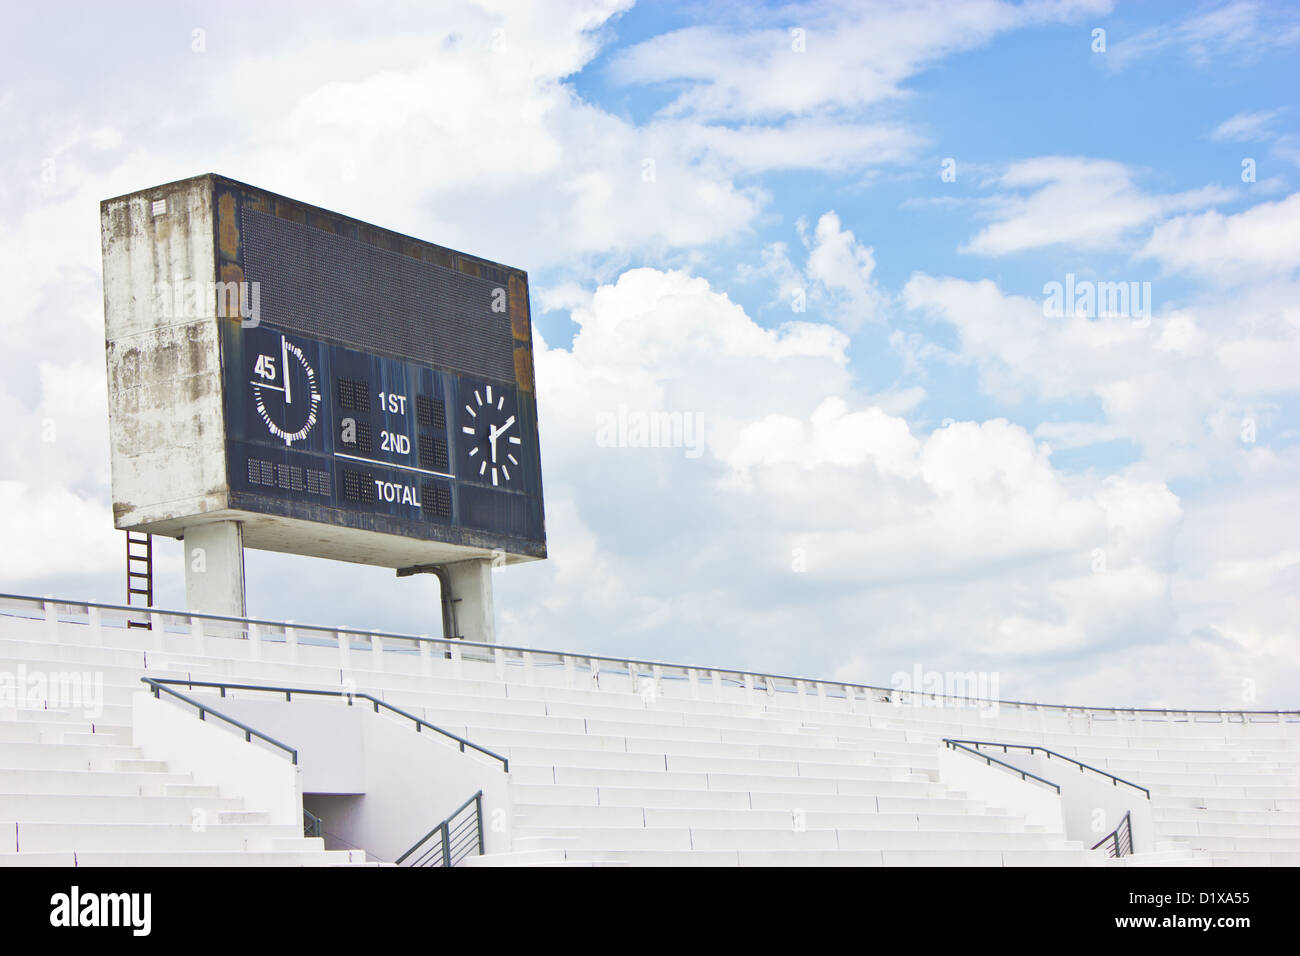 Old scoreboard and bleacher. - Stock Image